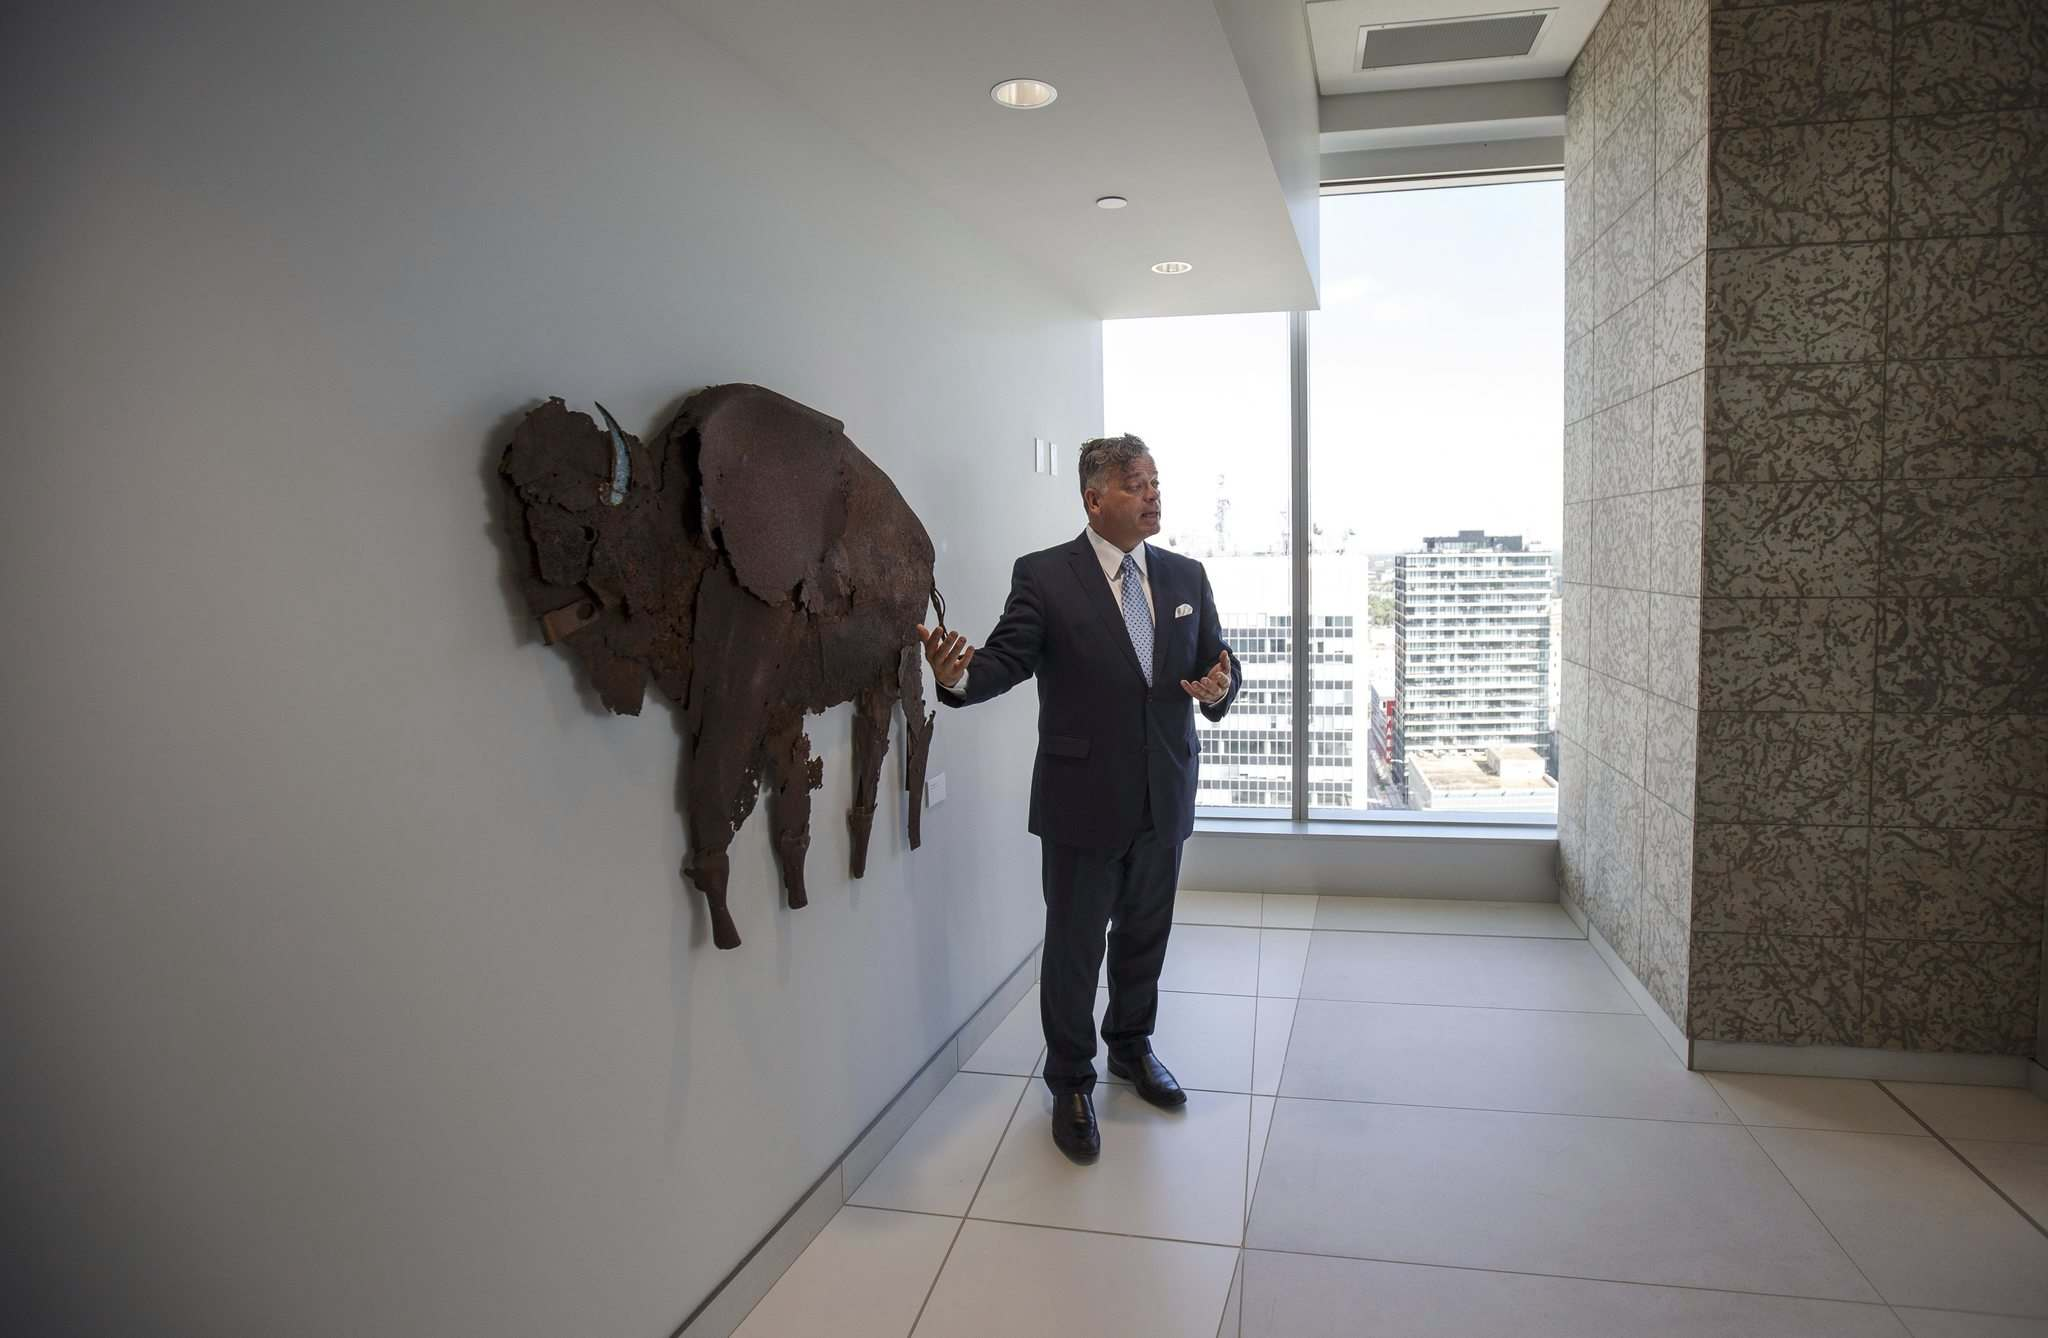 Jeff Hirsch from Thompson Dorfman Sweatman talks about the fine art that decorates the walls of their 17th floor offices. (Mike Deal / Winnipeg Free Press)</p>